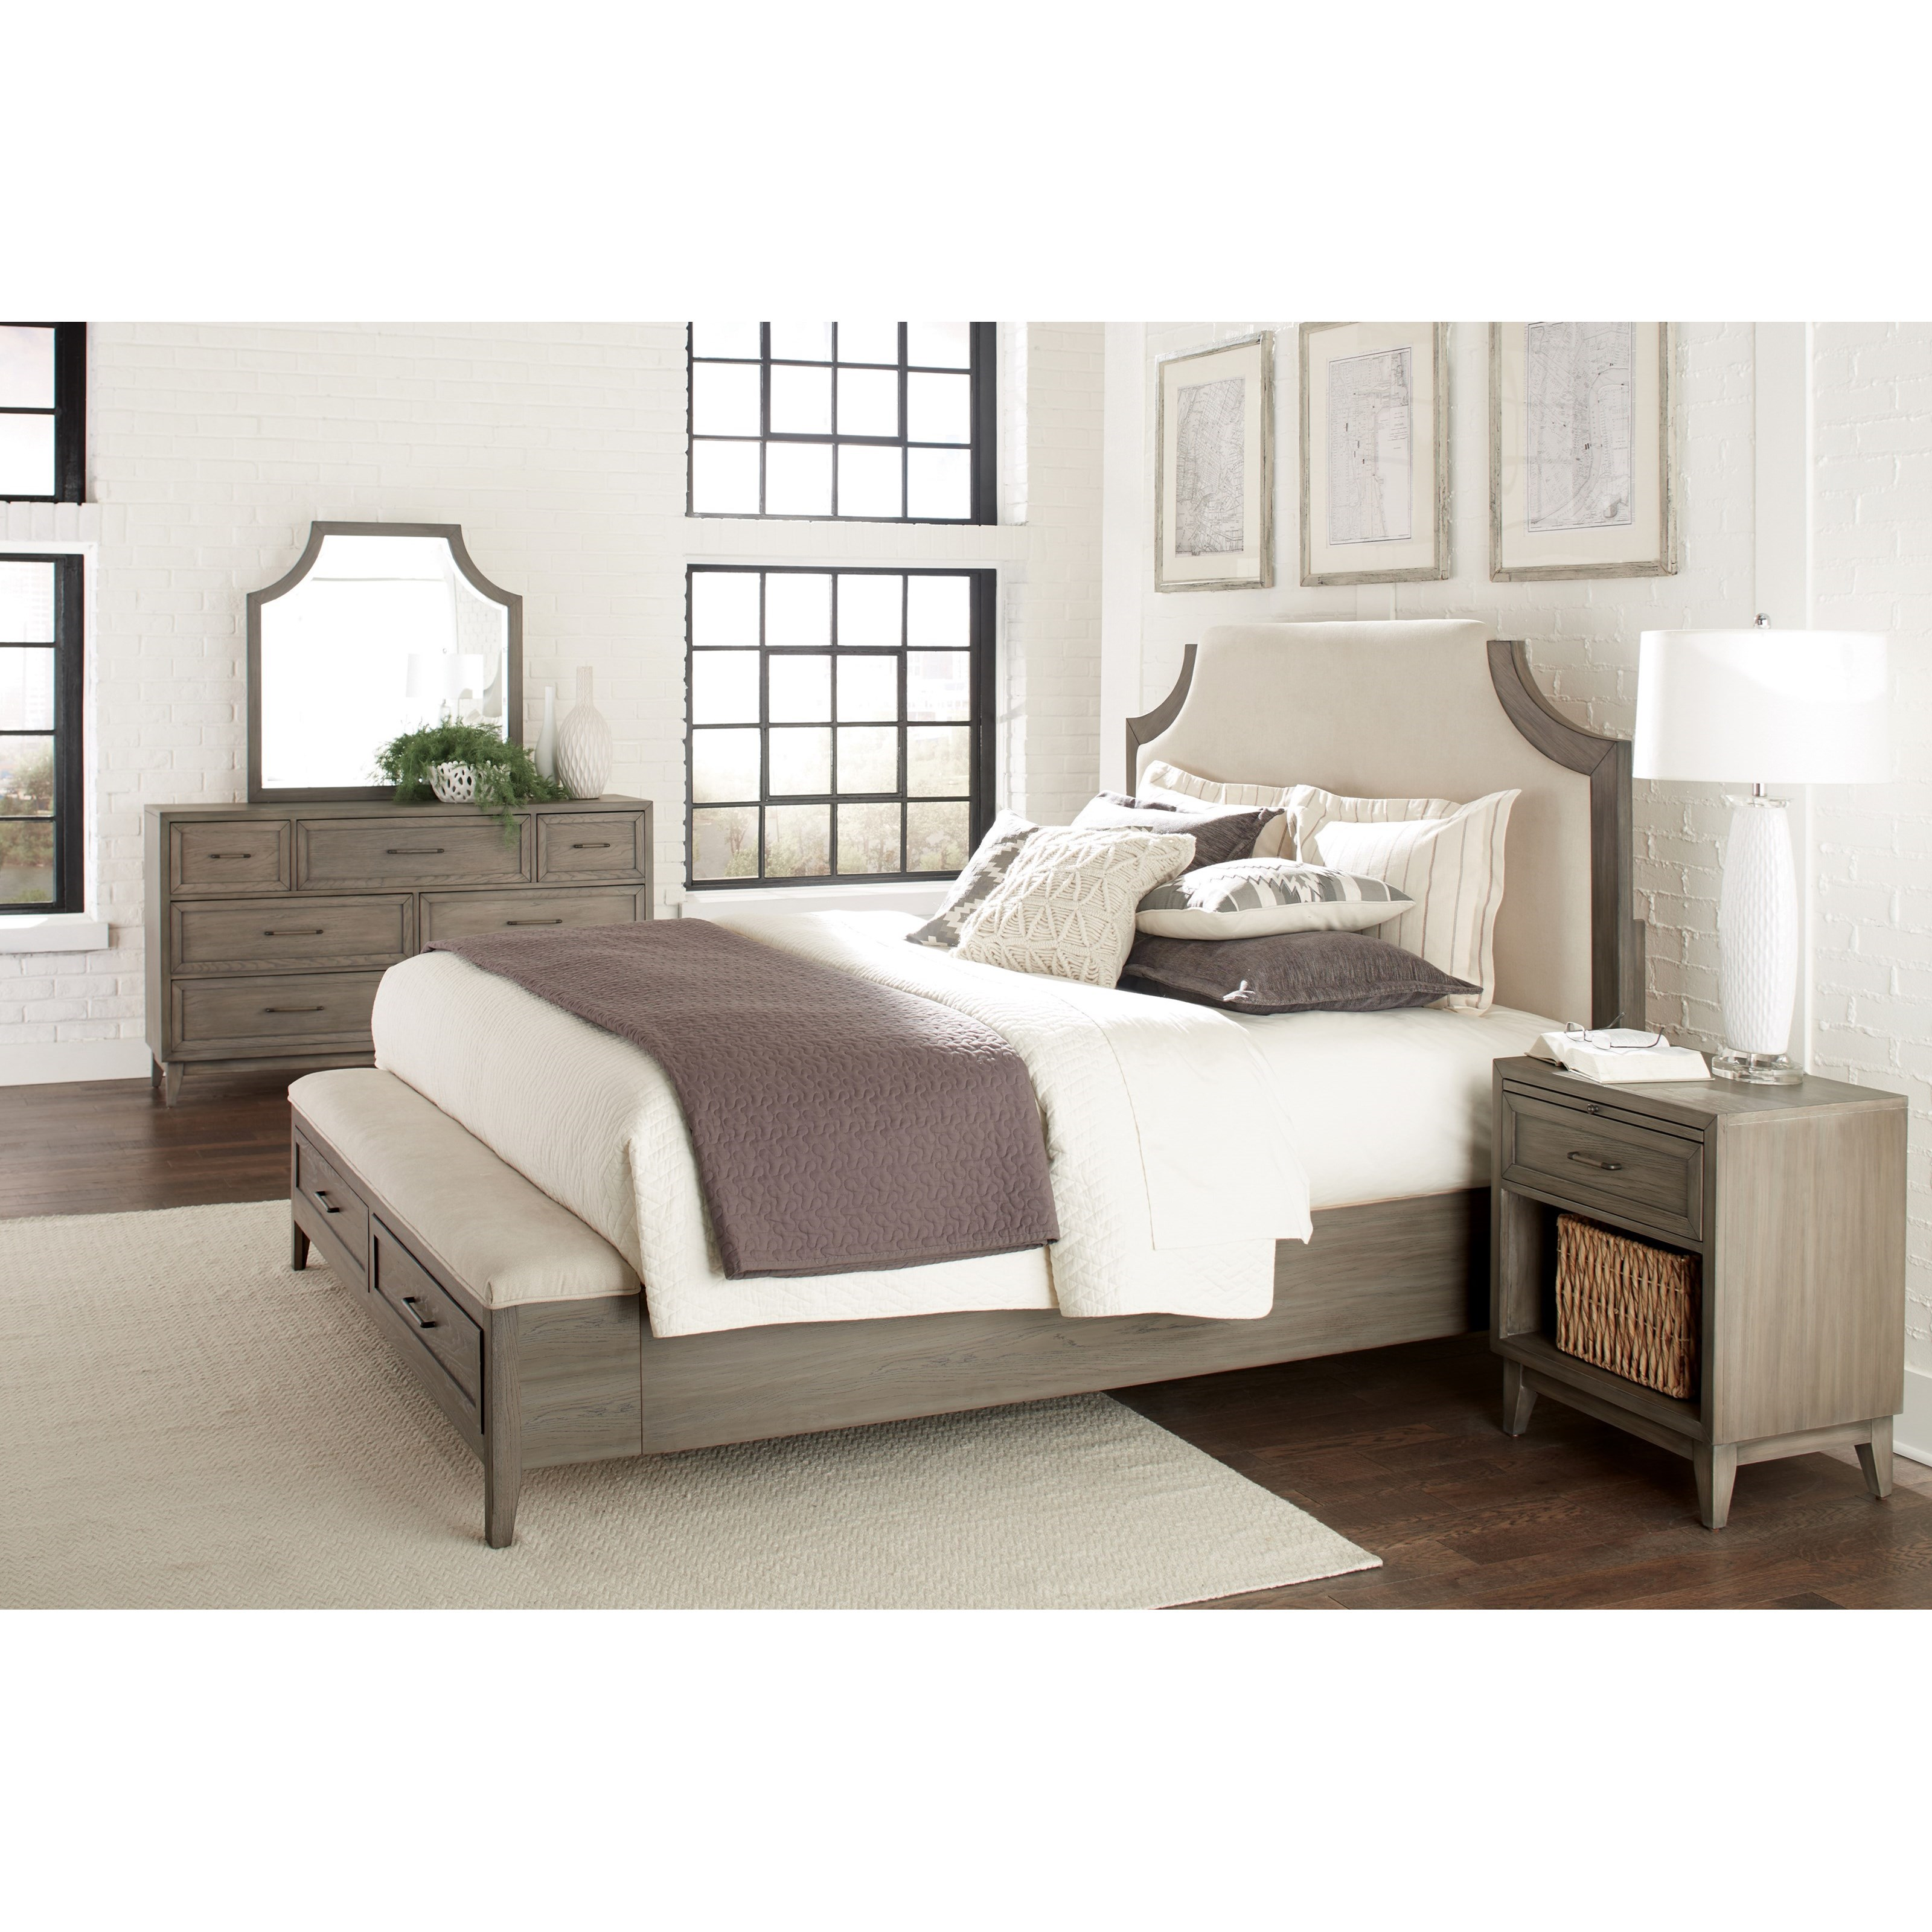 Bedroom Bench King Bed Queen Upholstered Bed With Storage Bench Footboard By